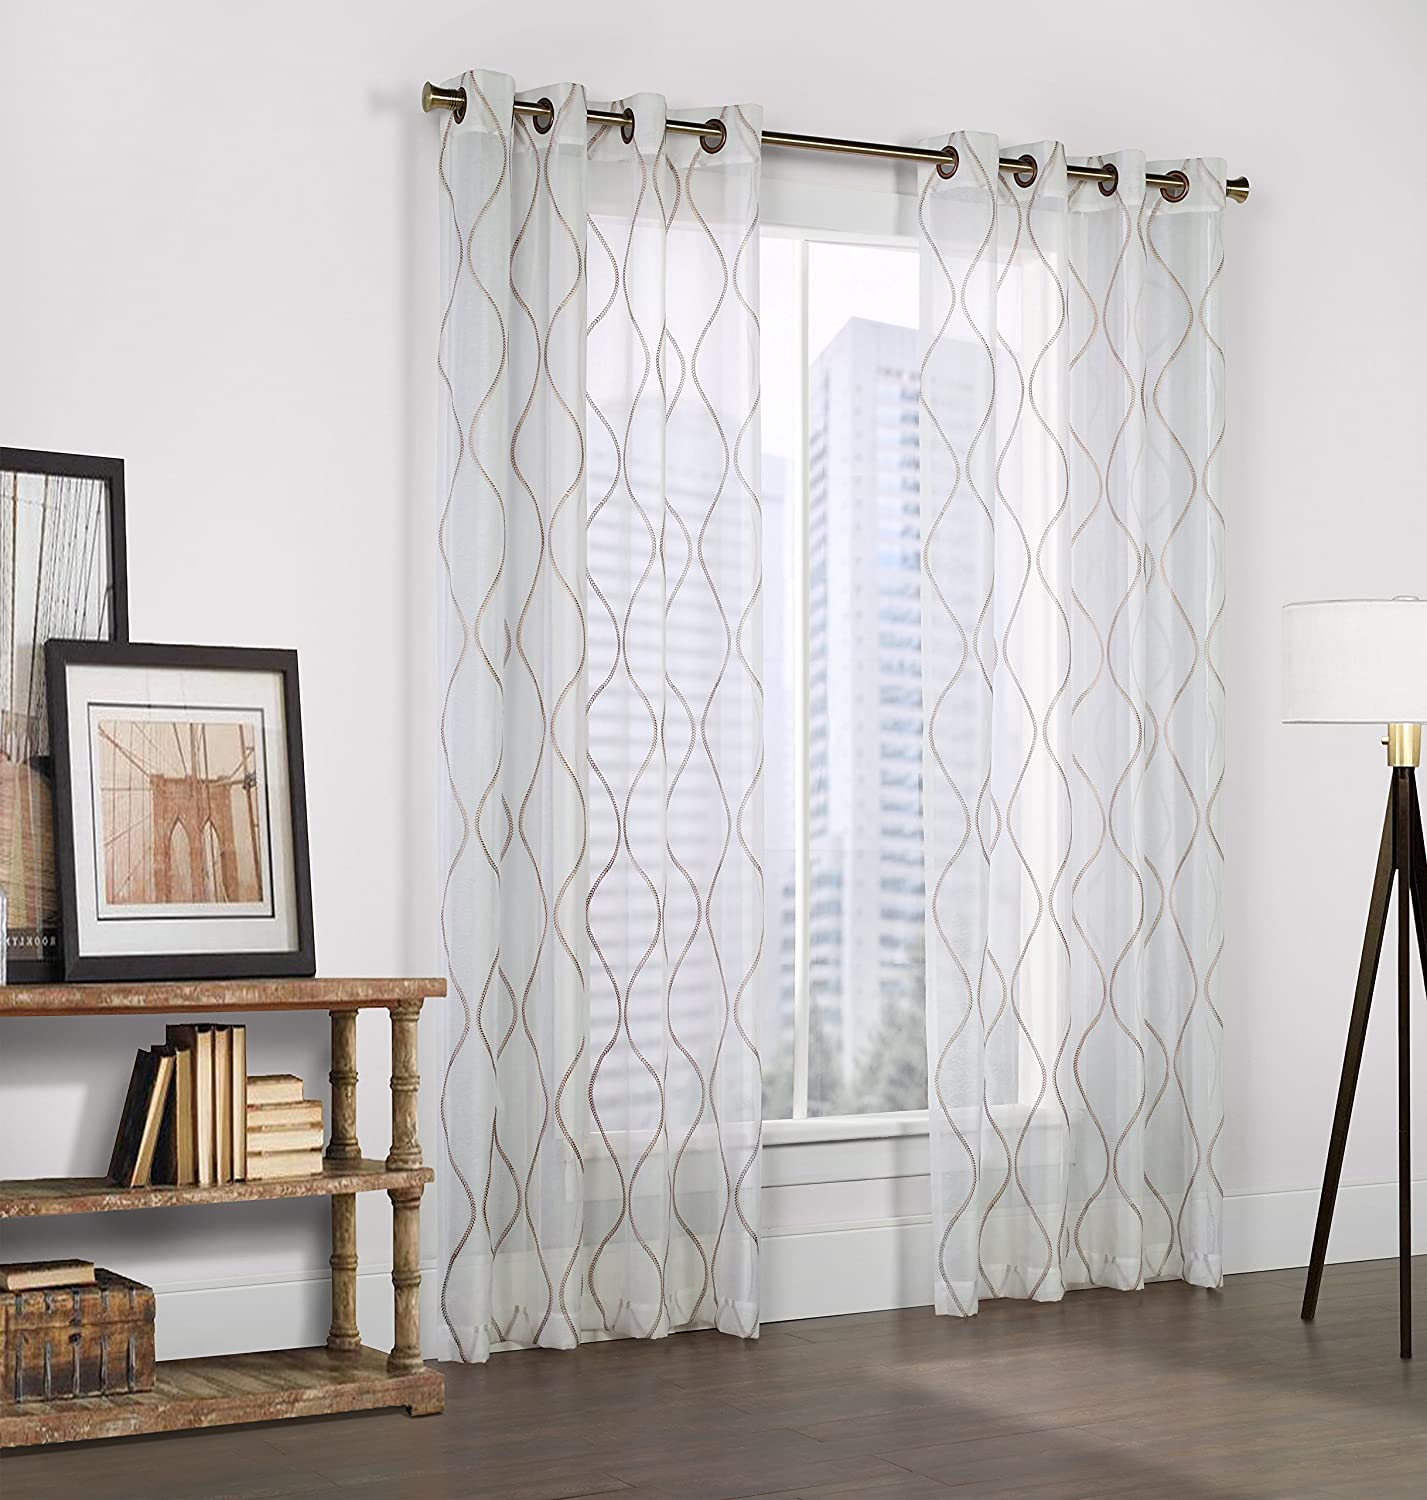 Common Wealth Home Fashions Crystal Couture Embroidered Faux Linen Curtain Panel, 54 X 95, White